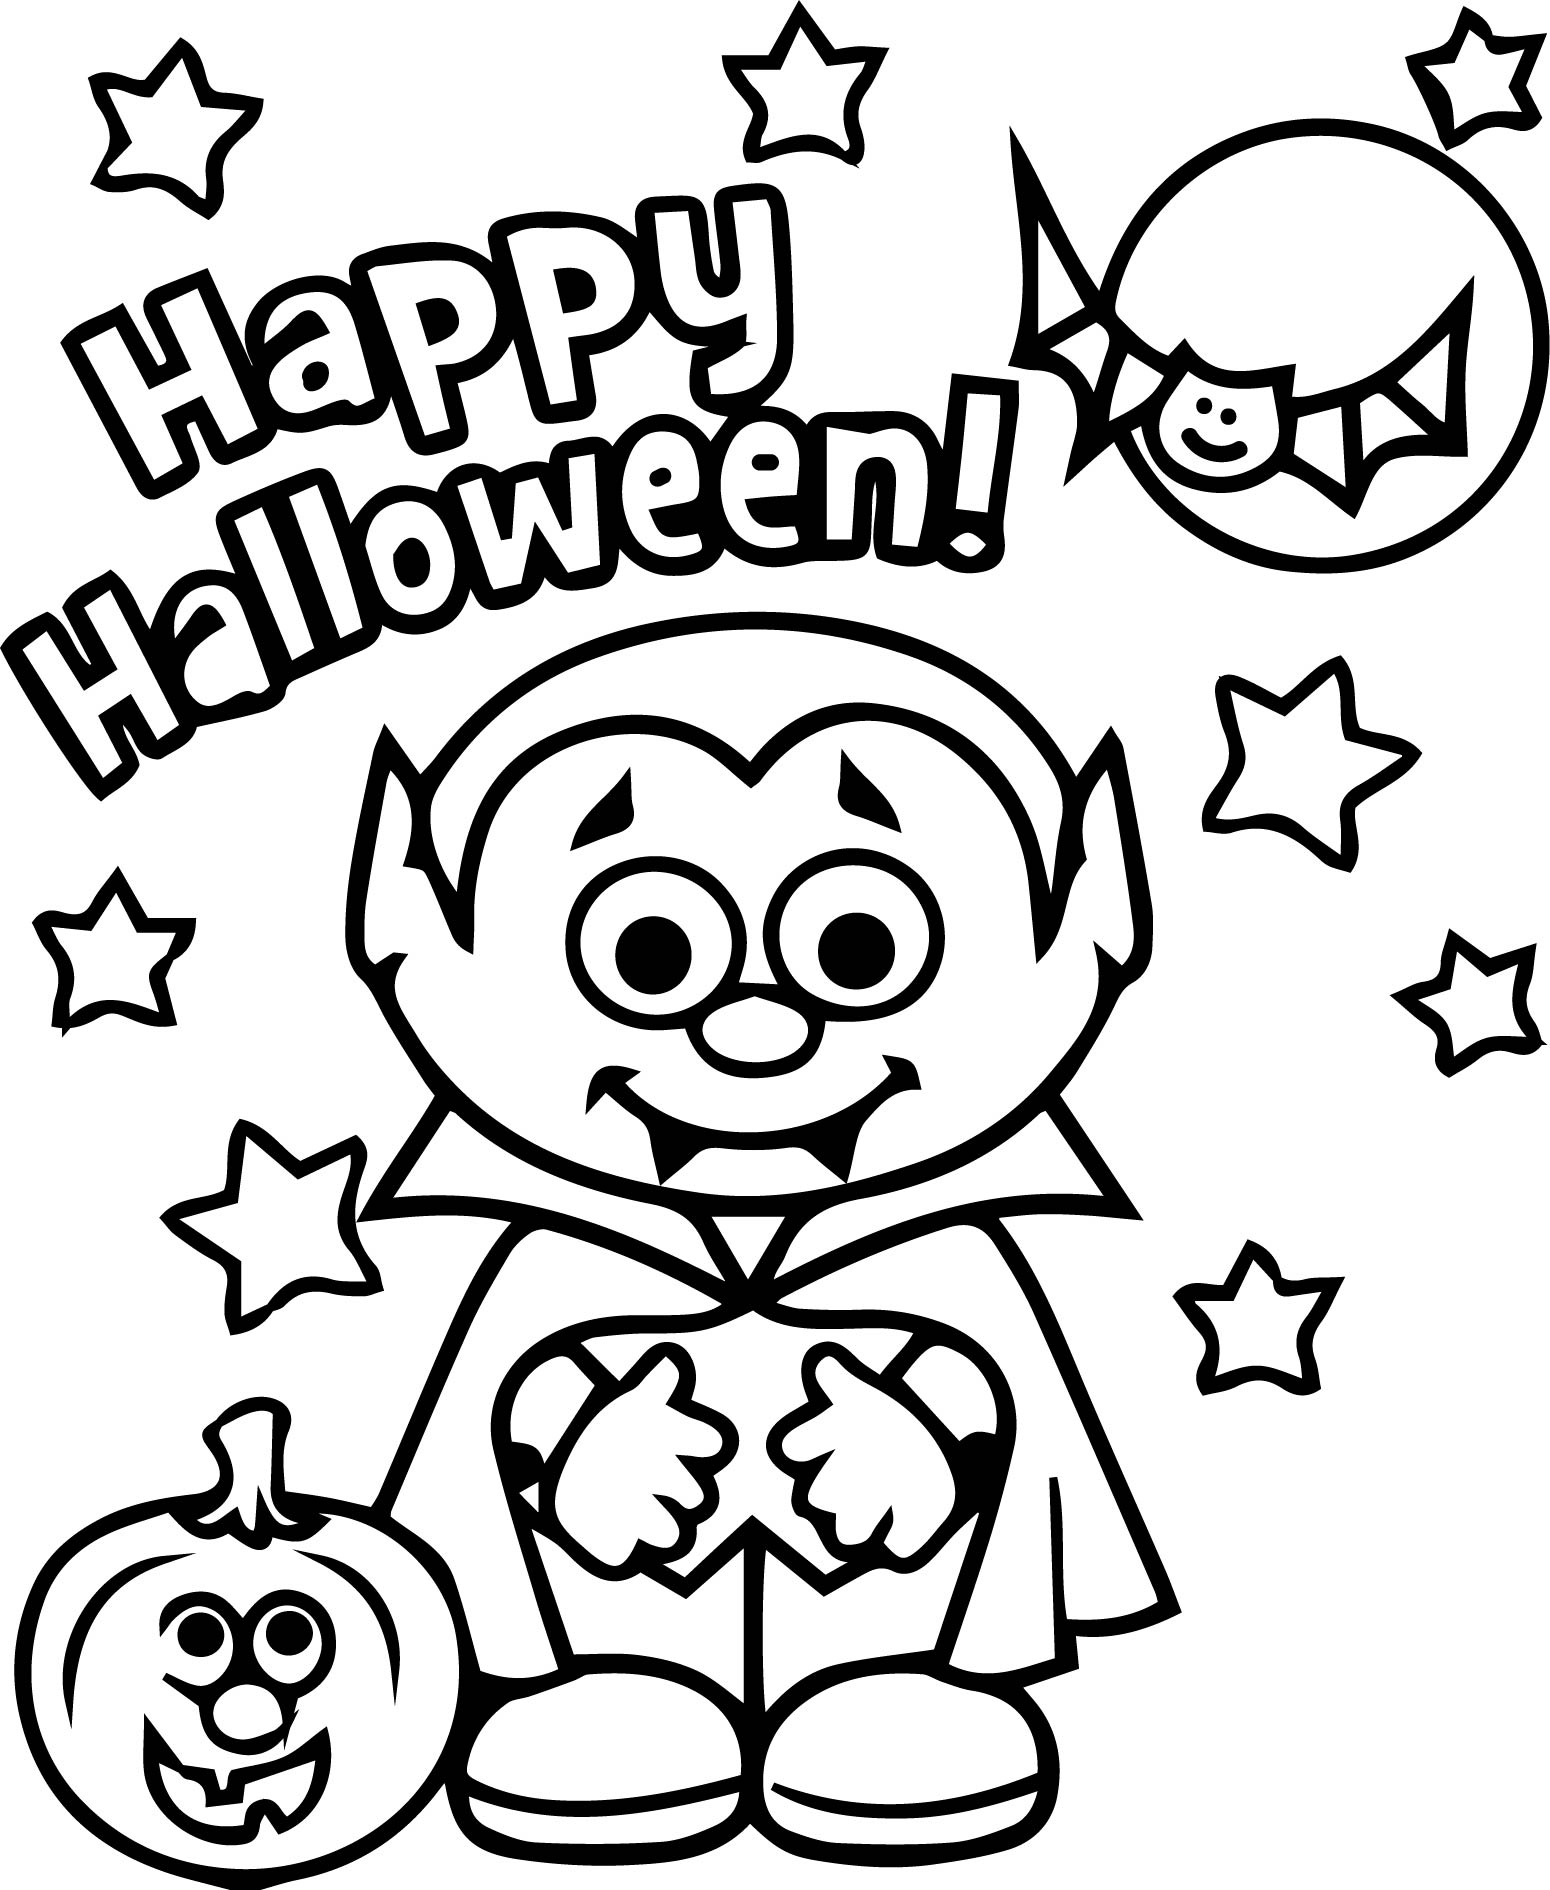 Vampire best happy halloween coloring page for Happy halloween coloring pages printable